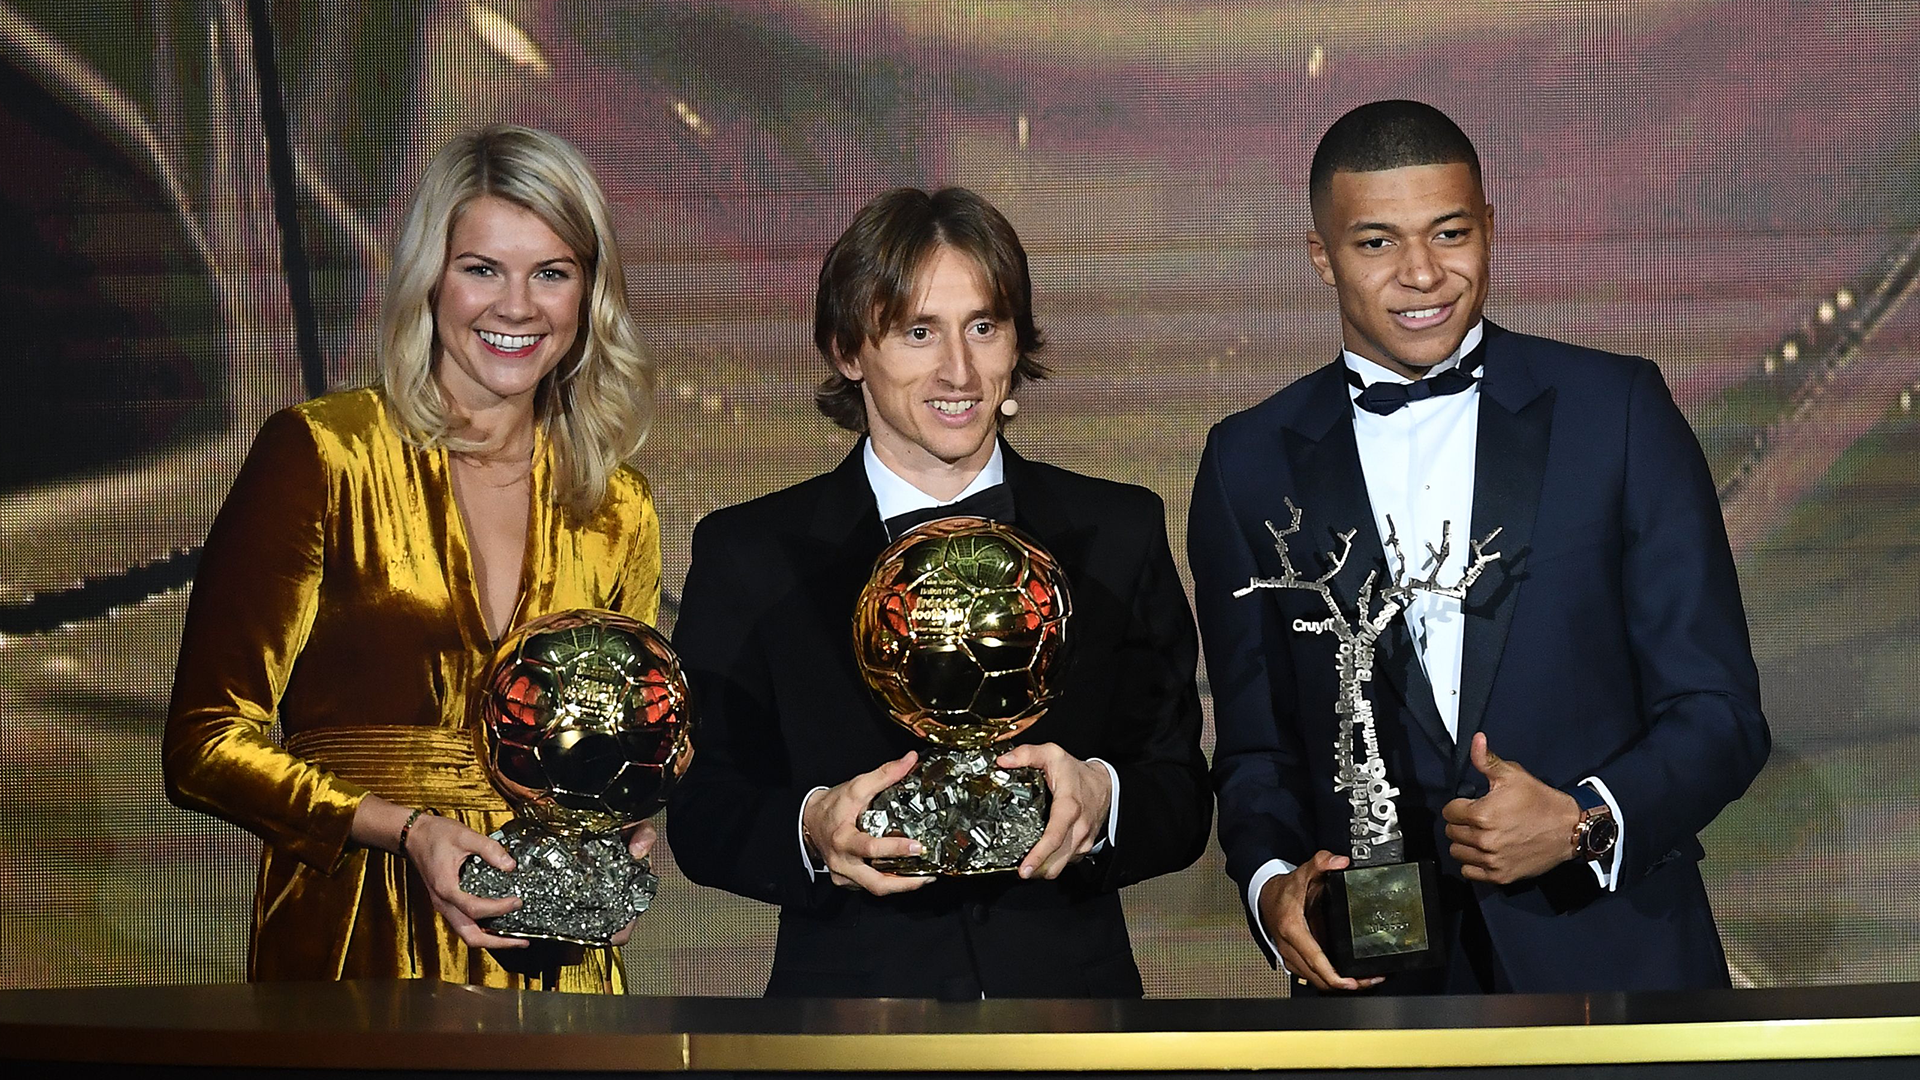 When does the 2019 Ballon d'Or ceremony take place?